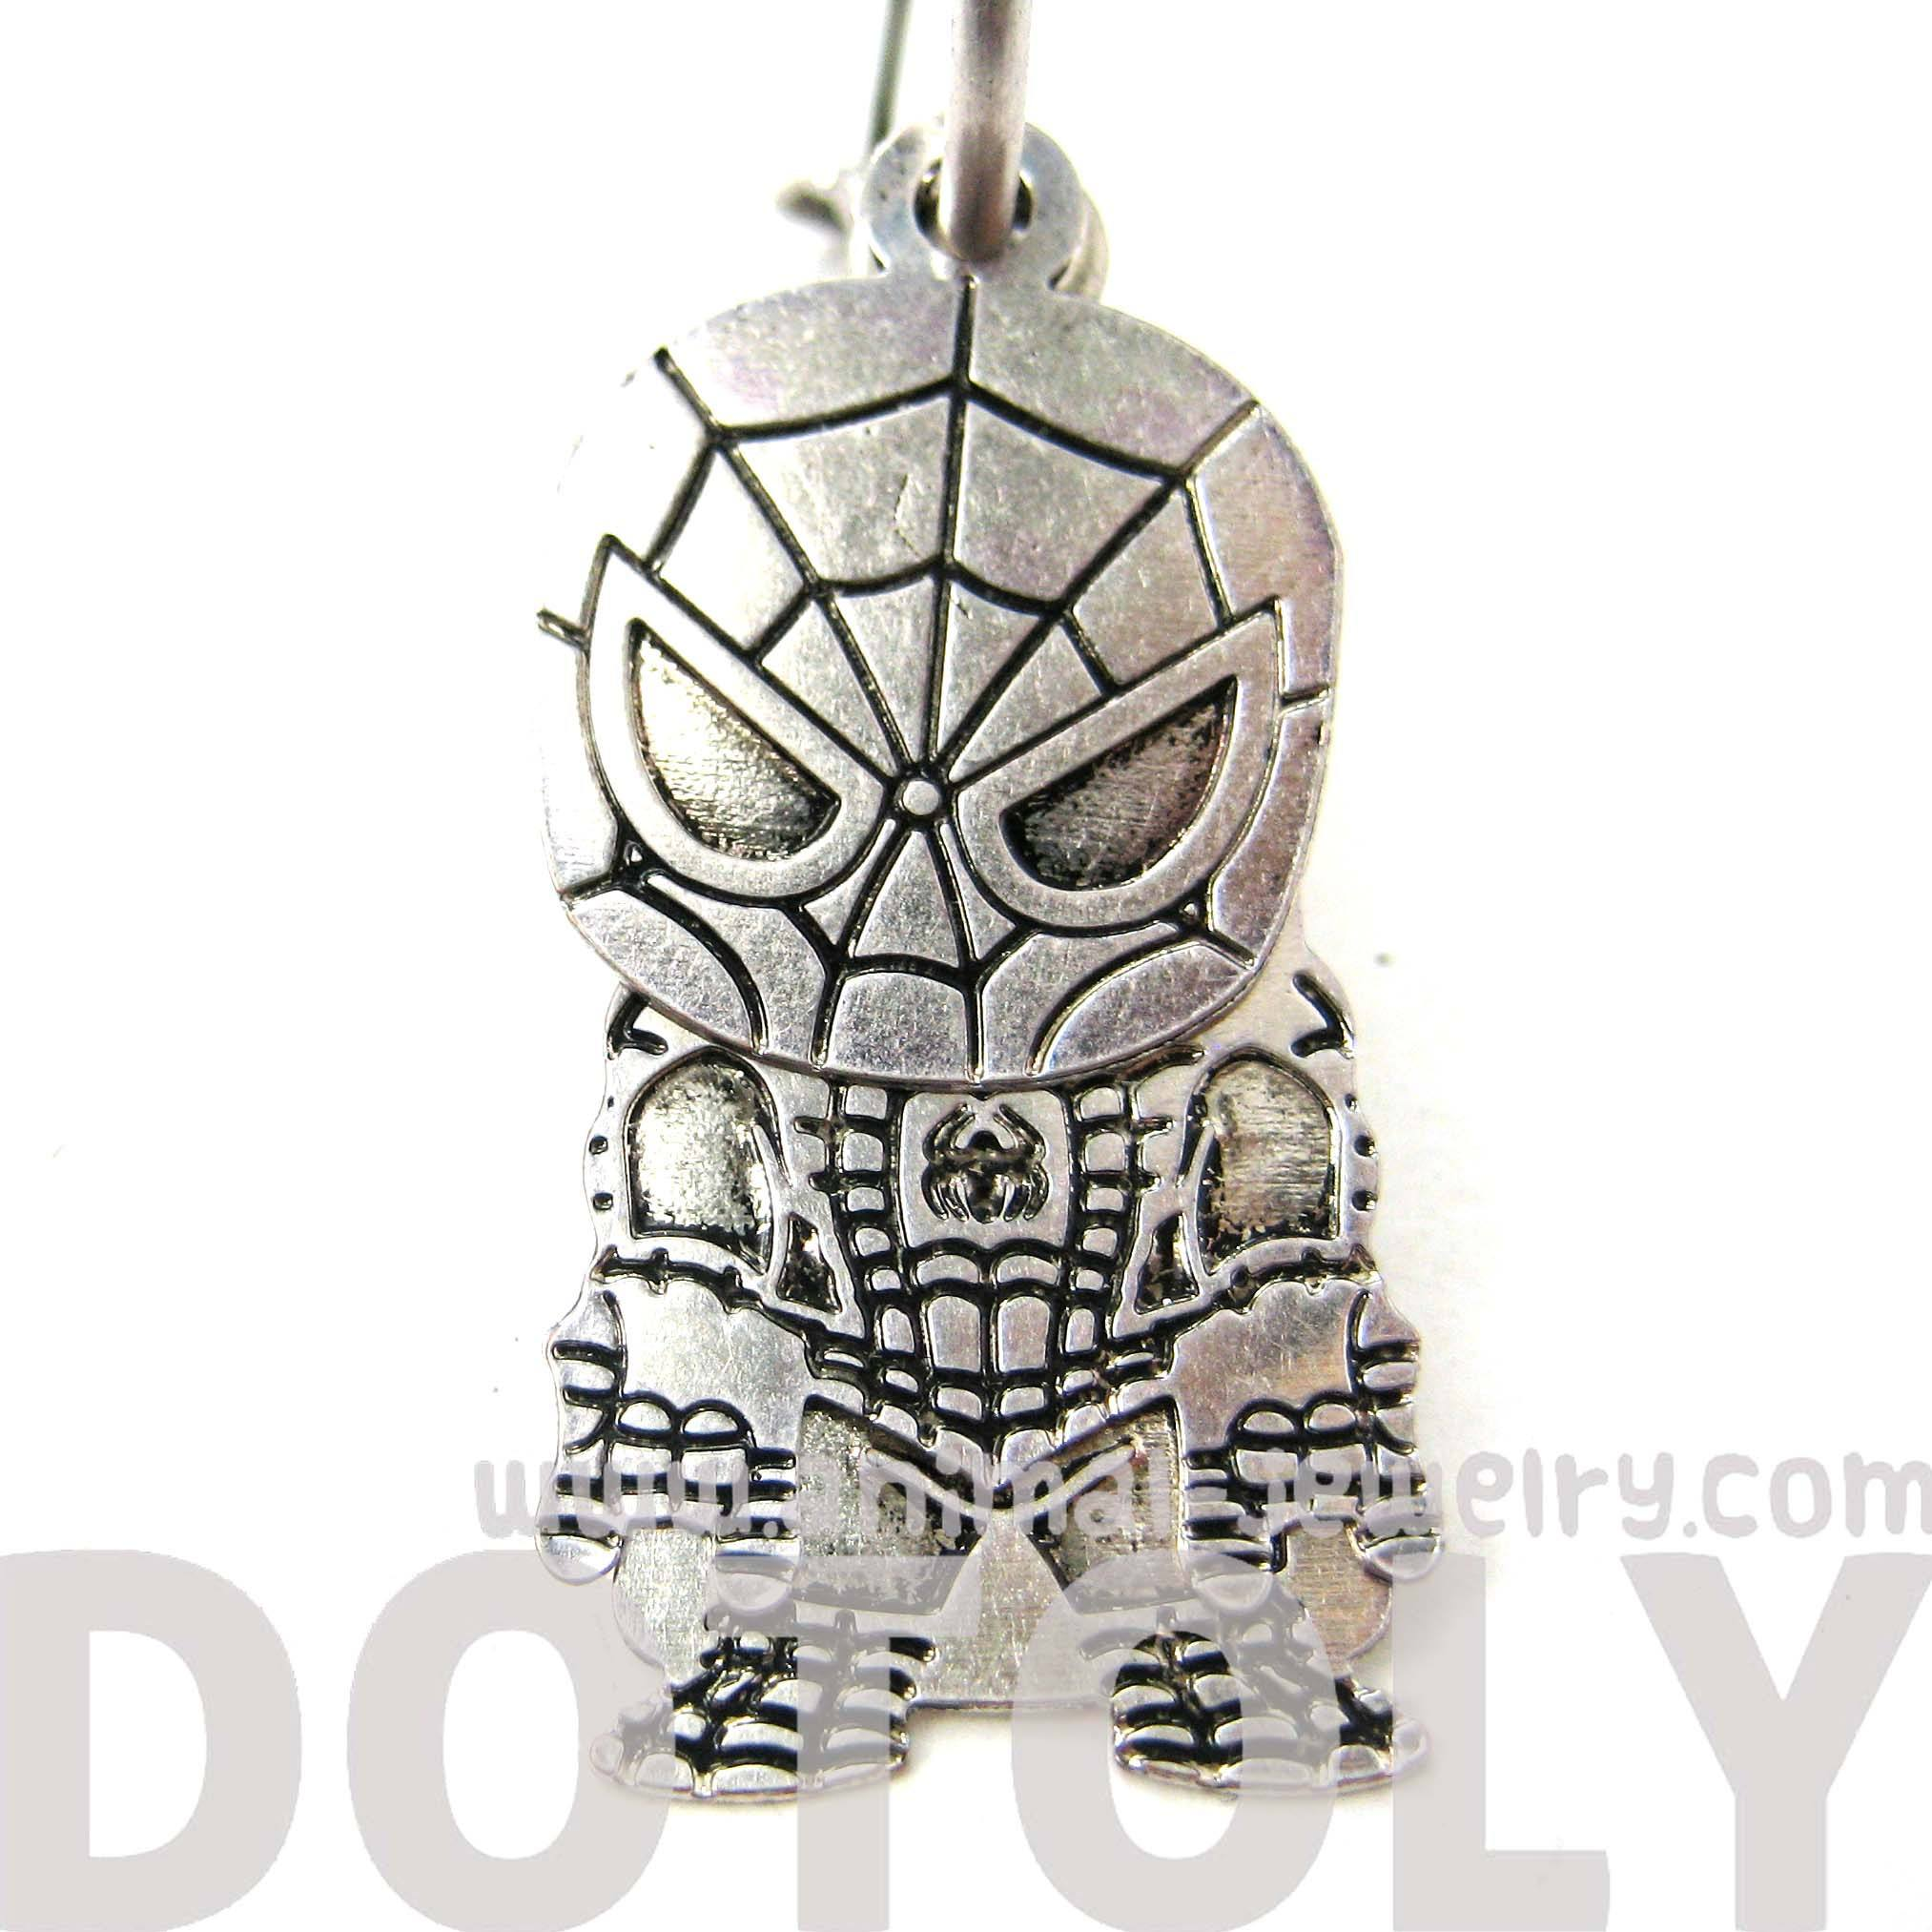 Chibi Spiderman Shaped Dangle Hoop Earrings in Silver | DOTOLY